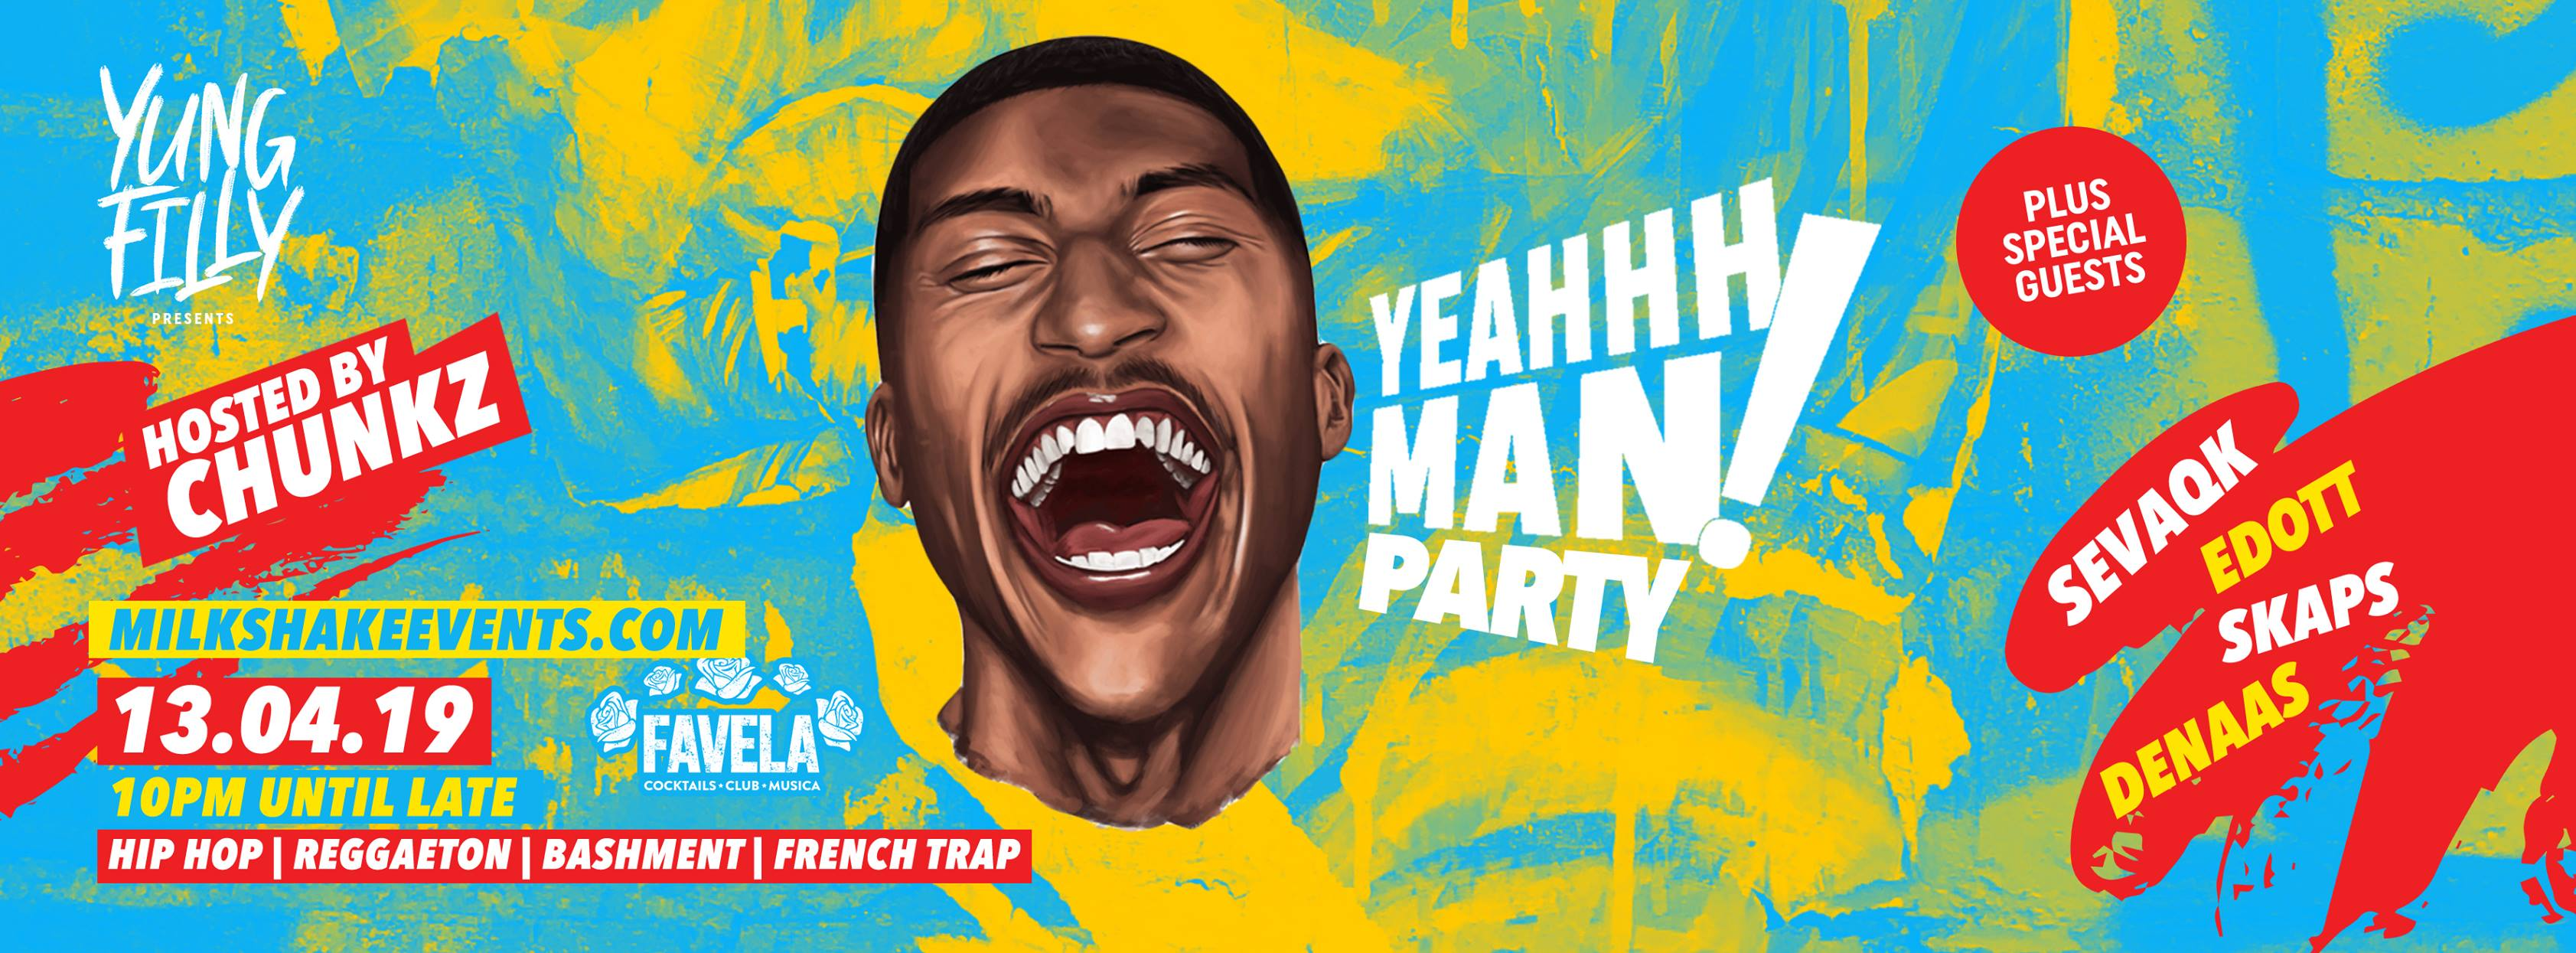 Yung Filly Presents: The YEAHHH MAN PARTY! | ft Chunkz, Sevaq & Special Guests